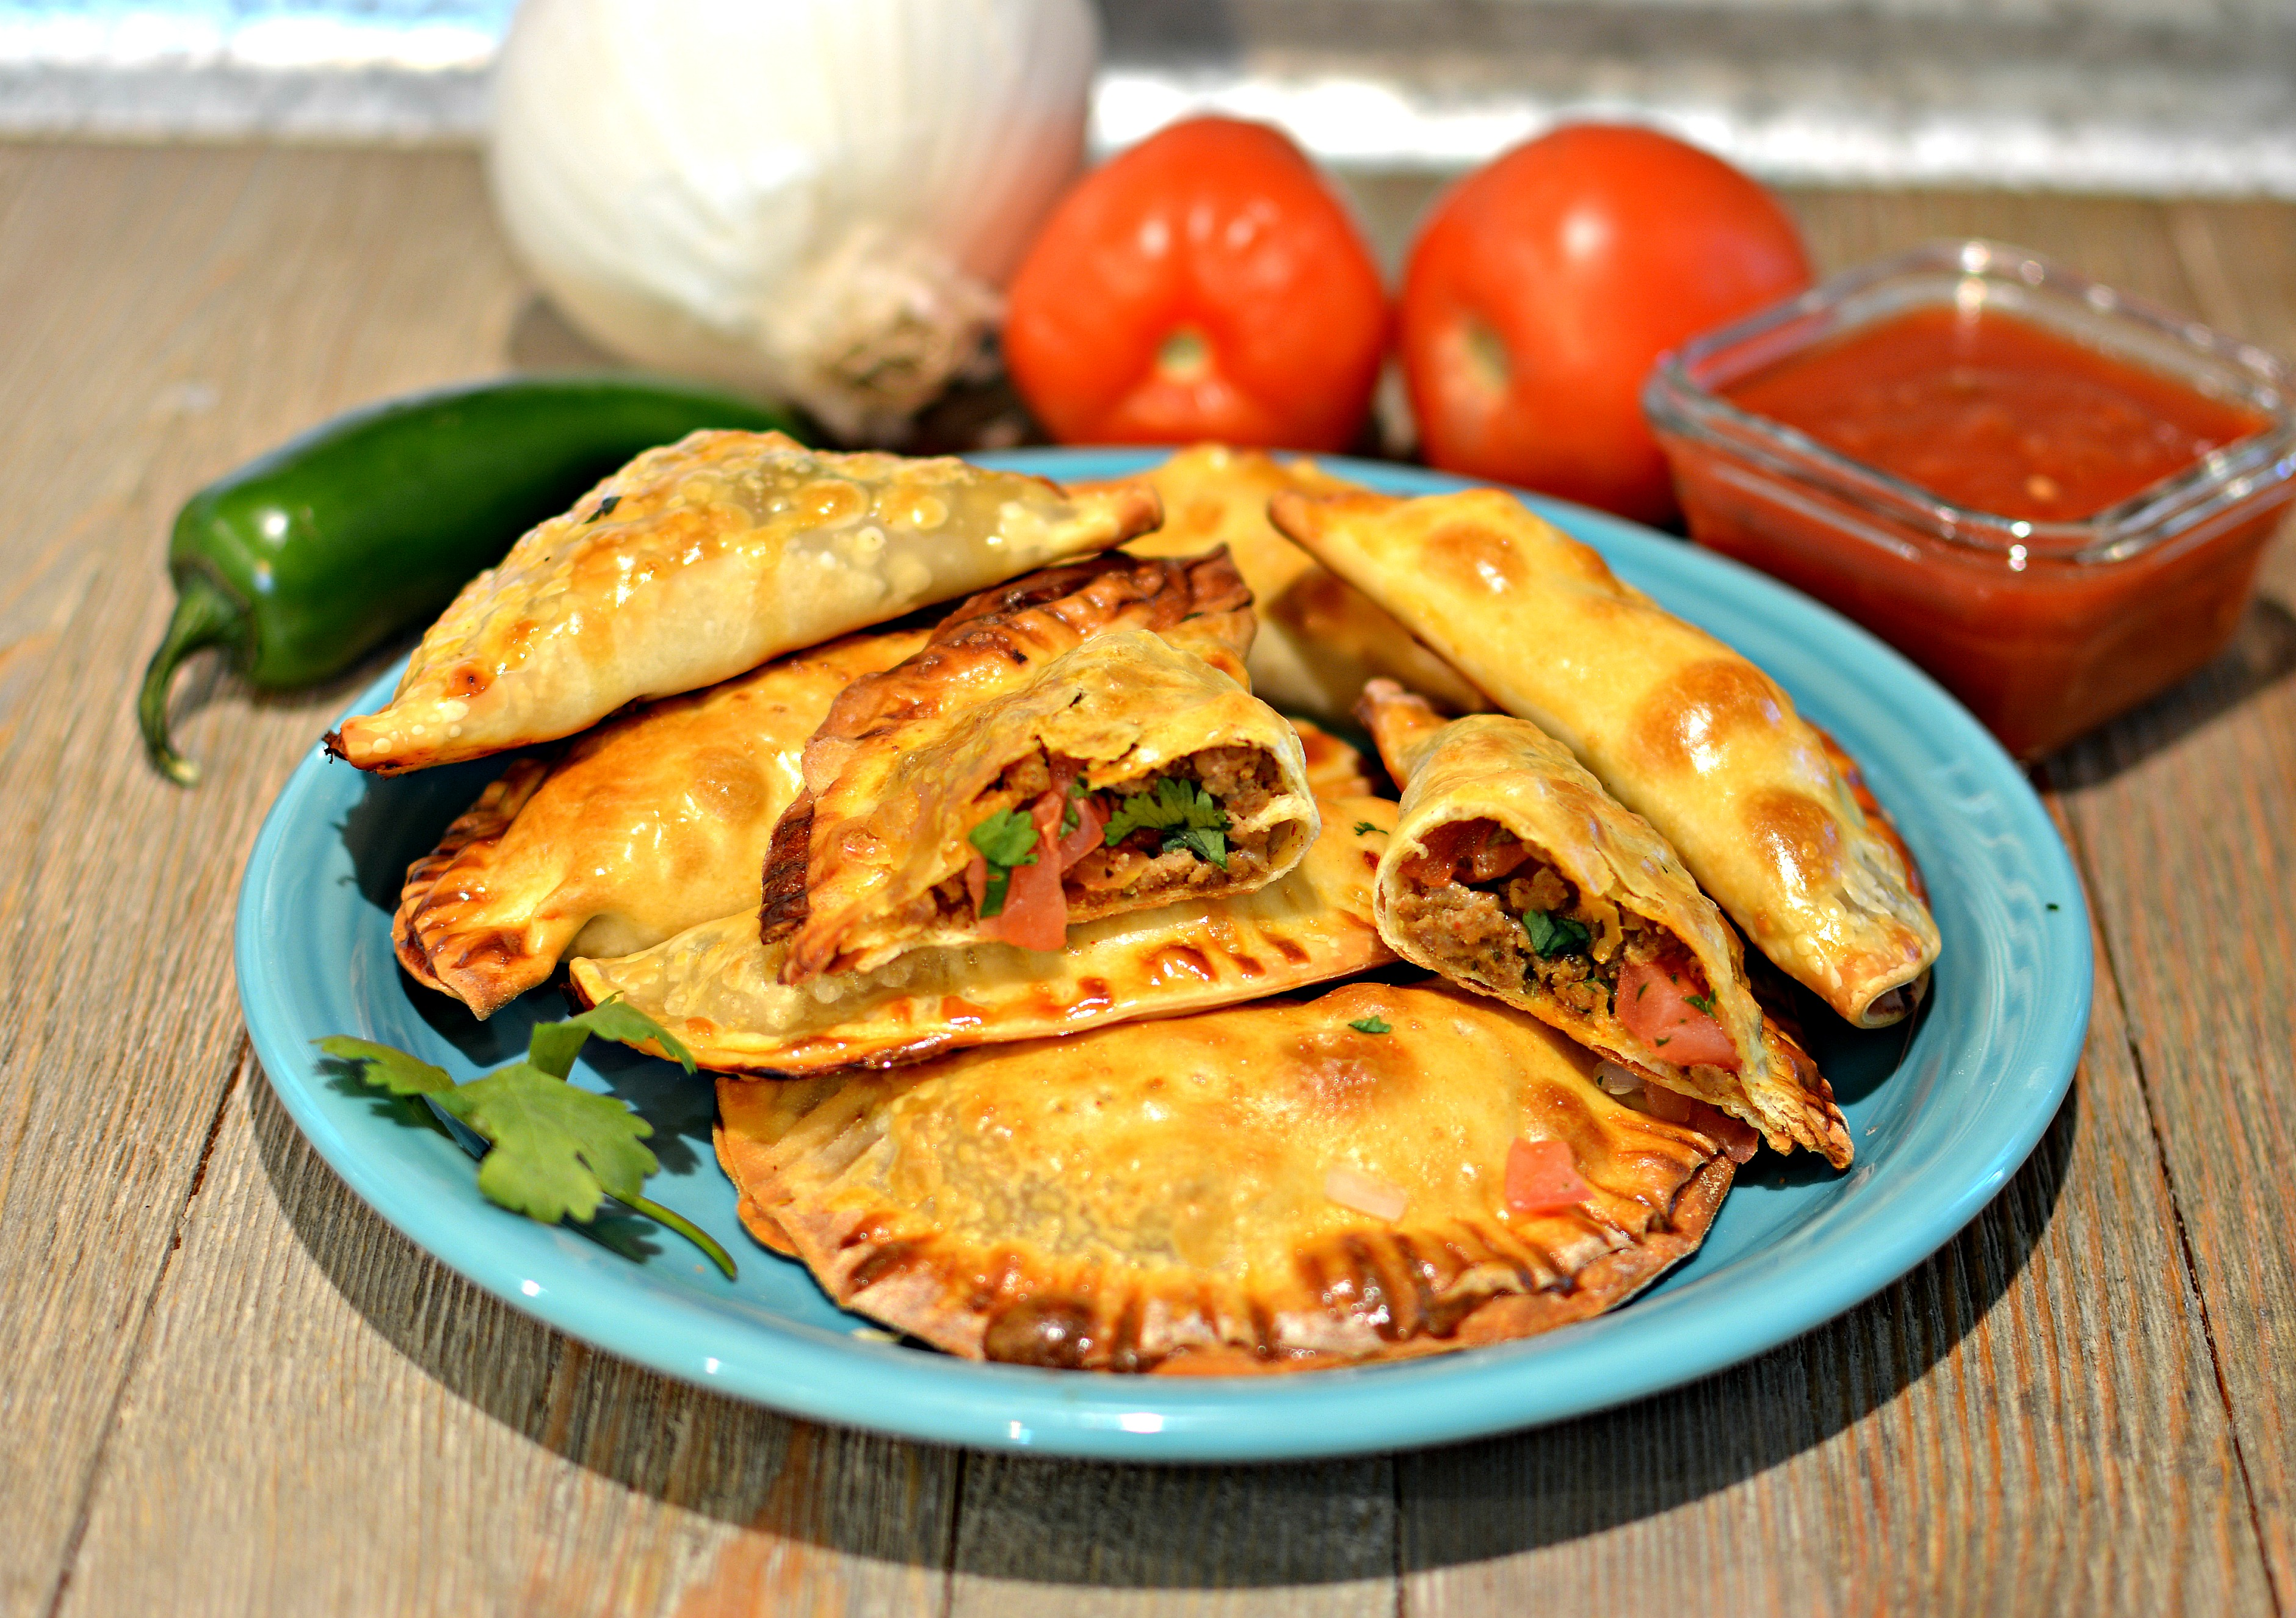 """Half taco, half calzone, all convenience. """"These taco pies are easier to handle than regular tacos you need two hands to keep the the shells from cracking and the fillings from falling out,"""" says bd.weld. """"Pico de gallo and pepper Jack cheese round out the flavors of the taco beef. Serve with picante sauce for dipping."""""""